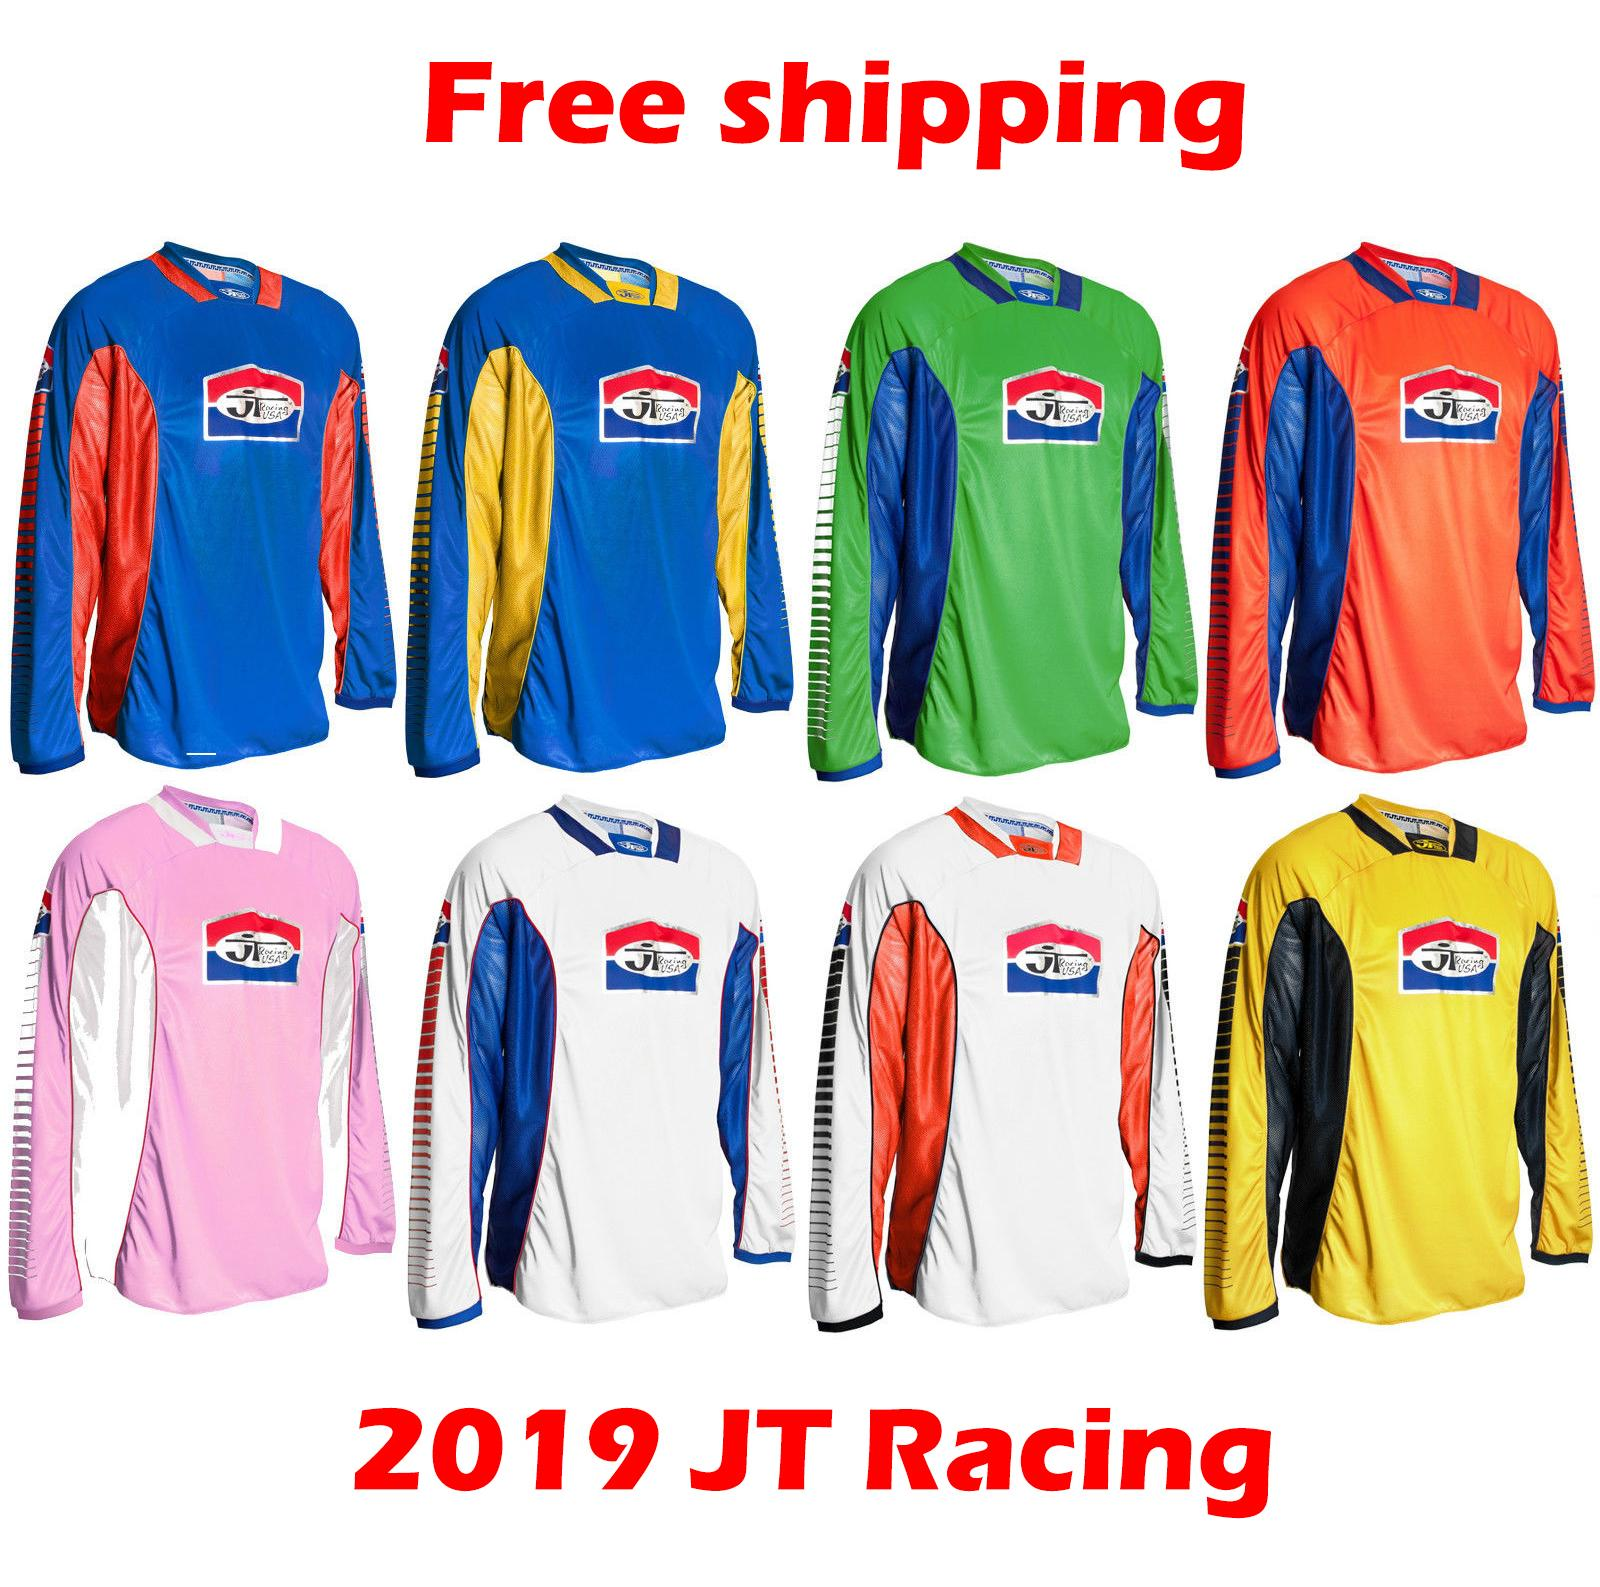 Cycling Jerseys Cycling Clothings Strong-Willed 2019 New Arrive Motocross Jersey Mx Dh Downhill Jersey Off Road Mountain Spexcec Cycling Long Sleeve Mtb/mx/bmx Bicycle Racing